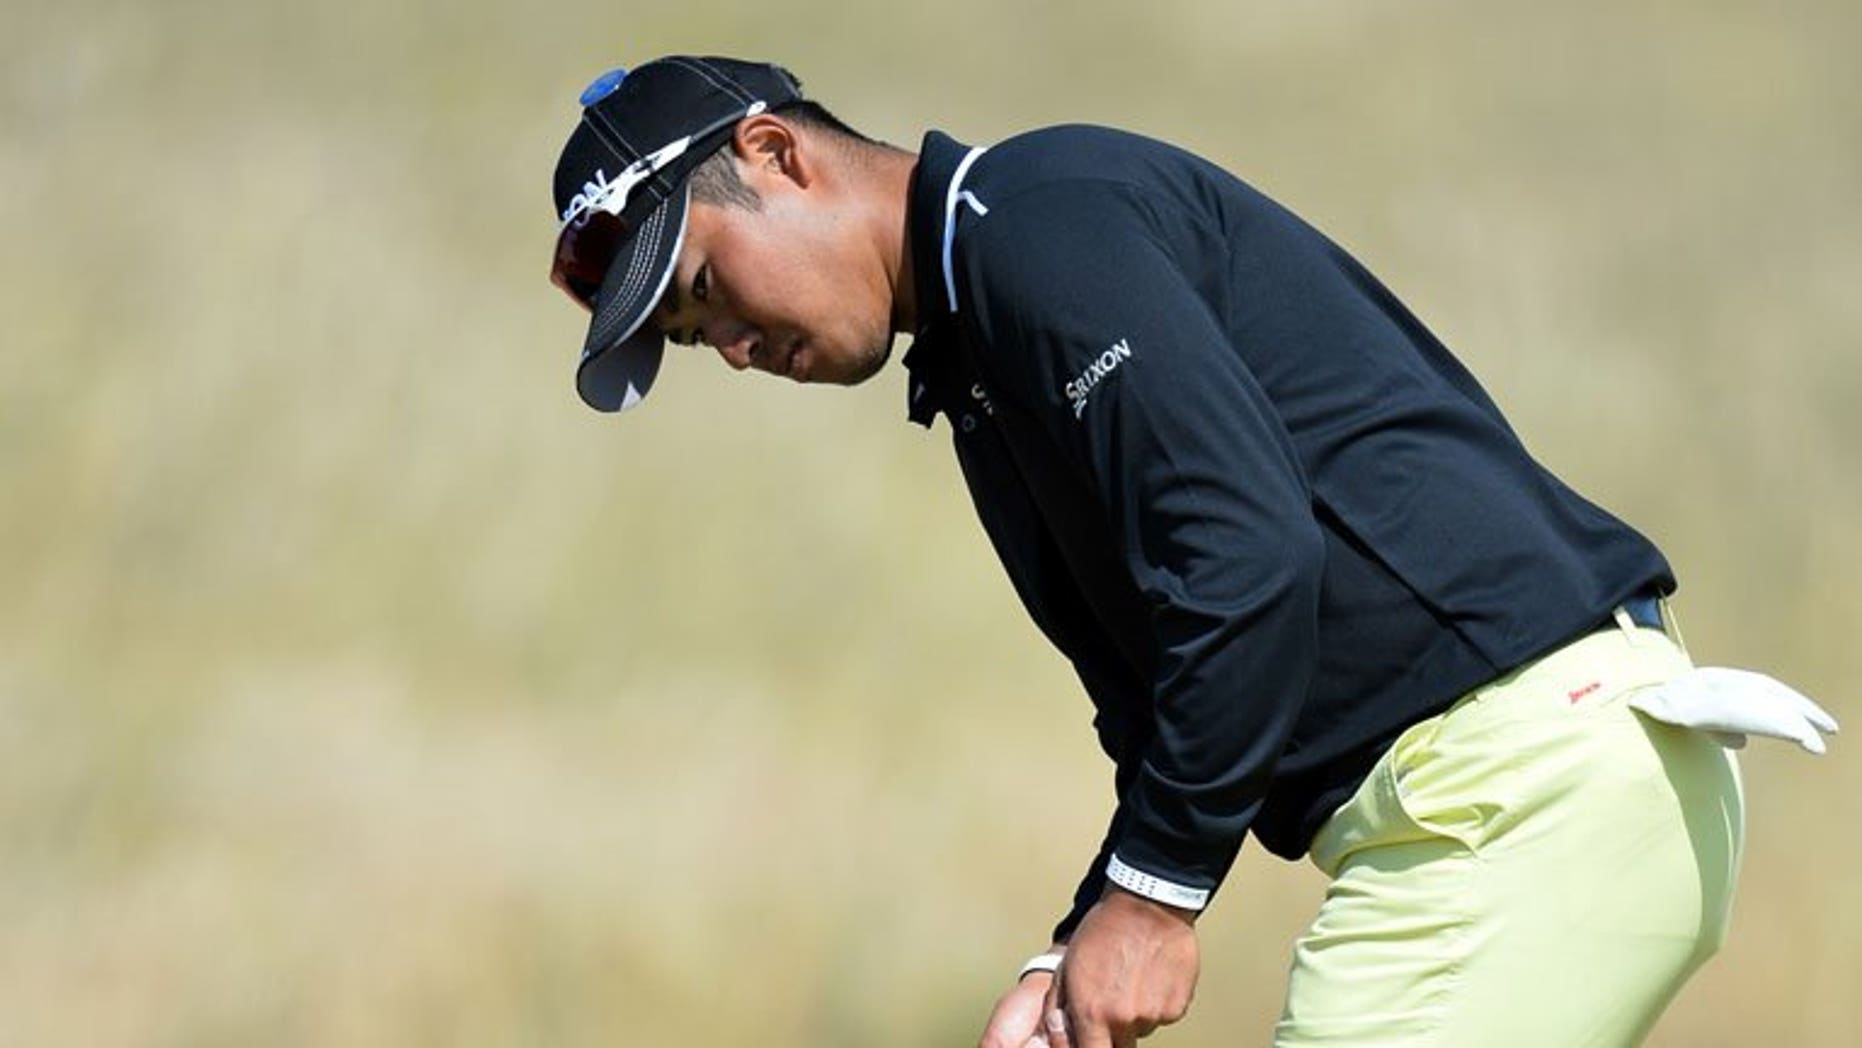 Japan's Hideki Matsuyama putts on the seventh green at Muirfield golf course in Scotland, on July 15, 2013. Matsuyama has sought out the advice of veteran compatriot Shigeki Maruyama to help him prepare for his British Open debut at Muirfield this week.